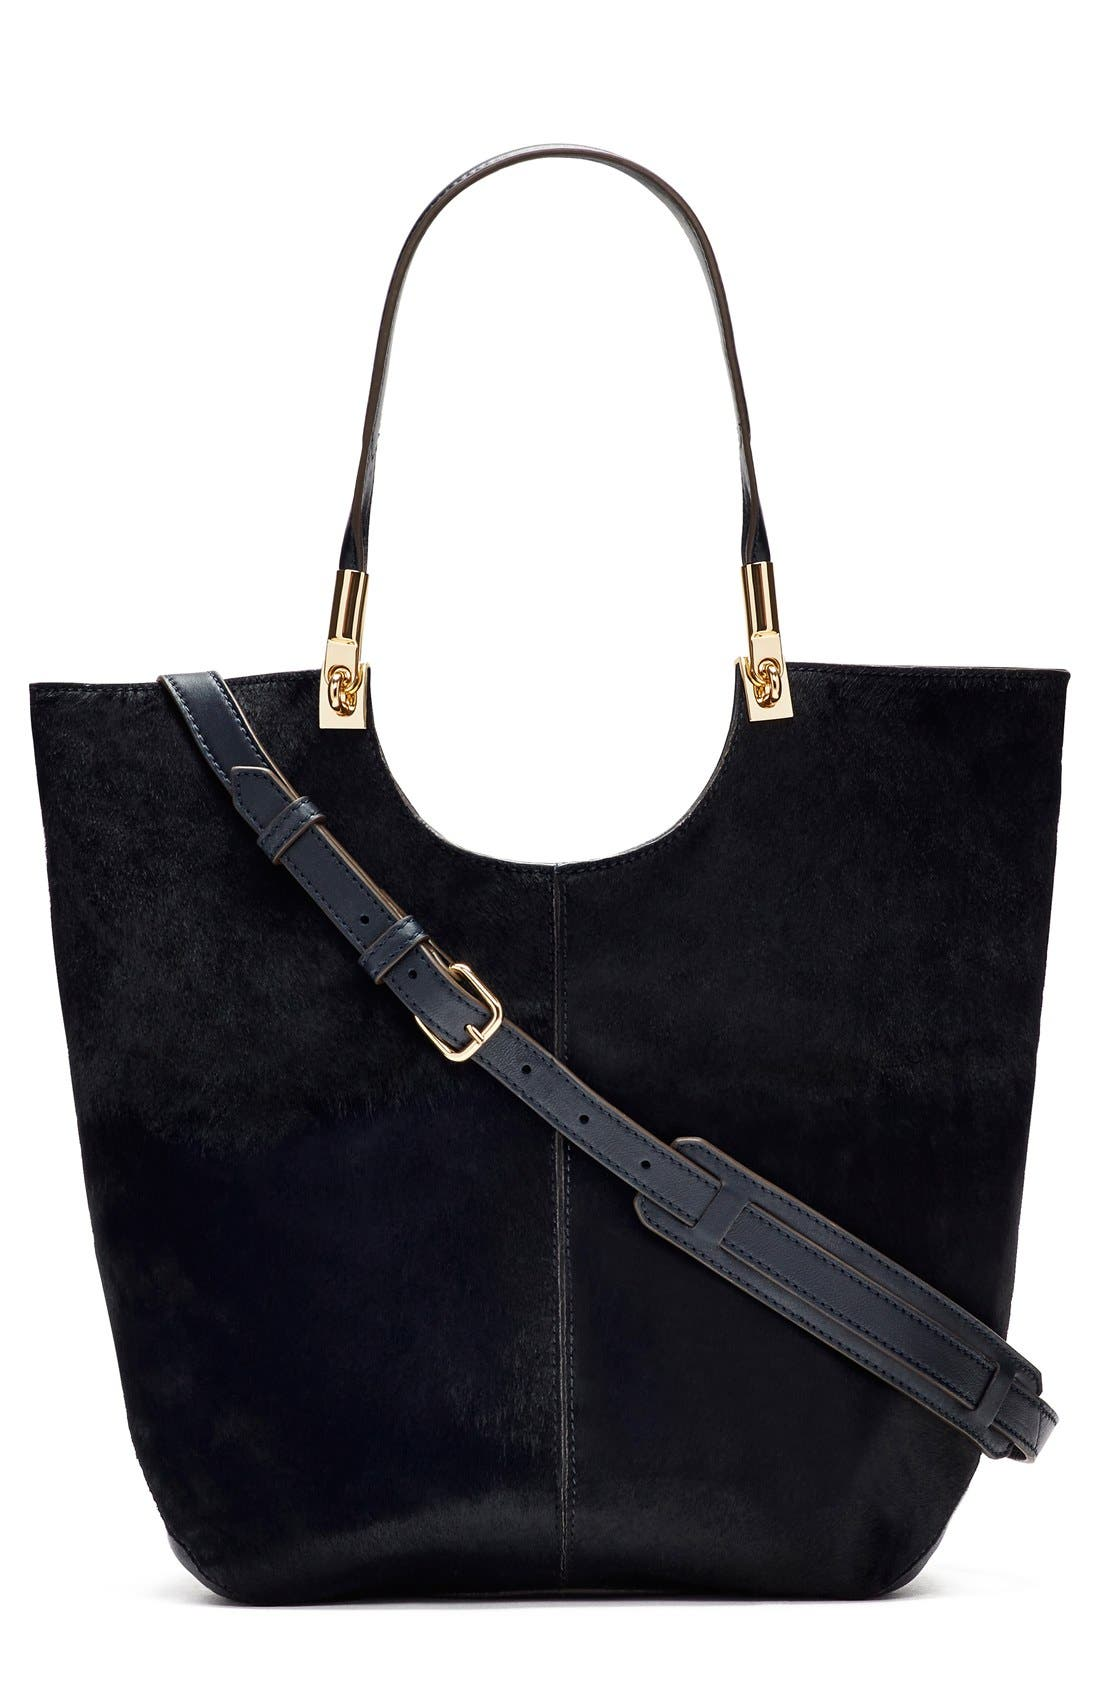 Alternate Image 1 Selected - Elizabeth and James'Cynnie' Convertible Shopper